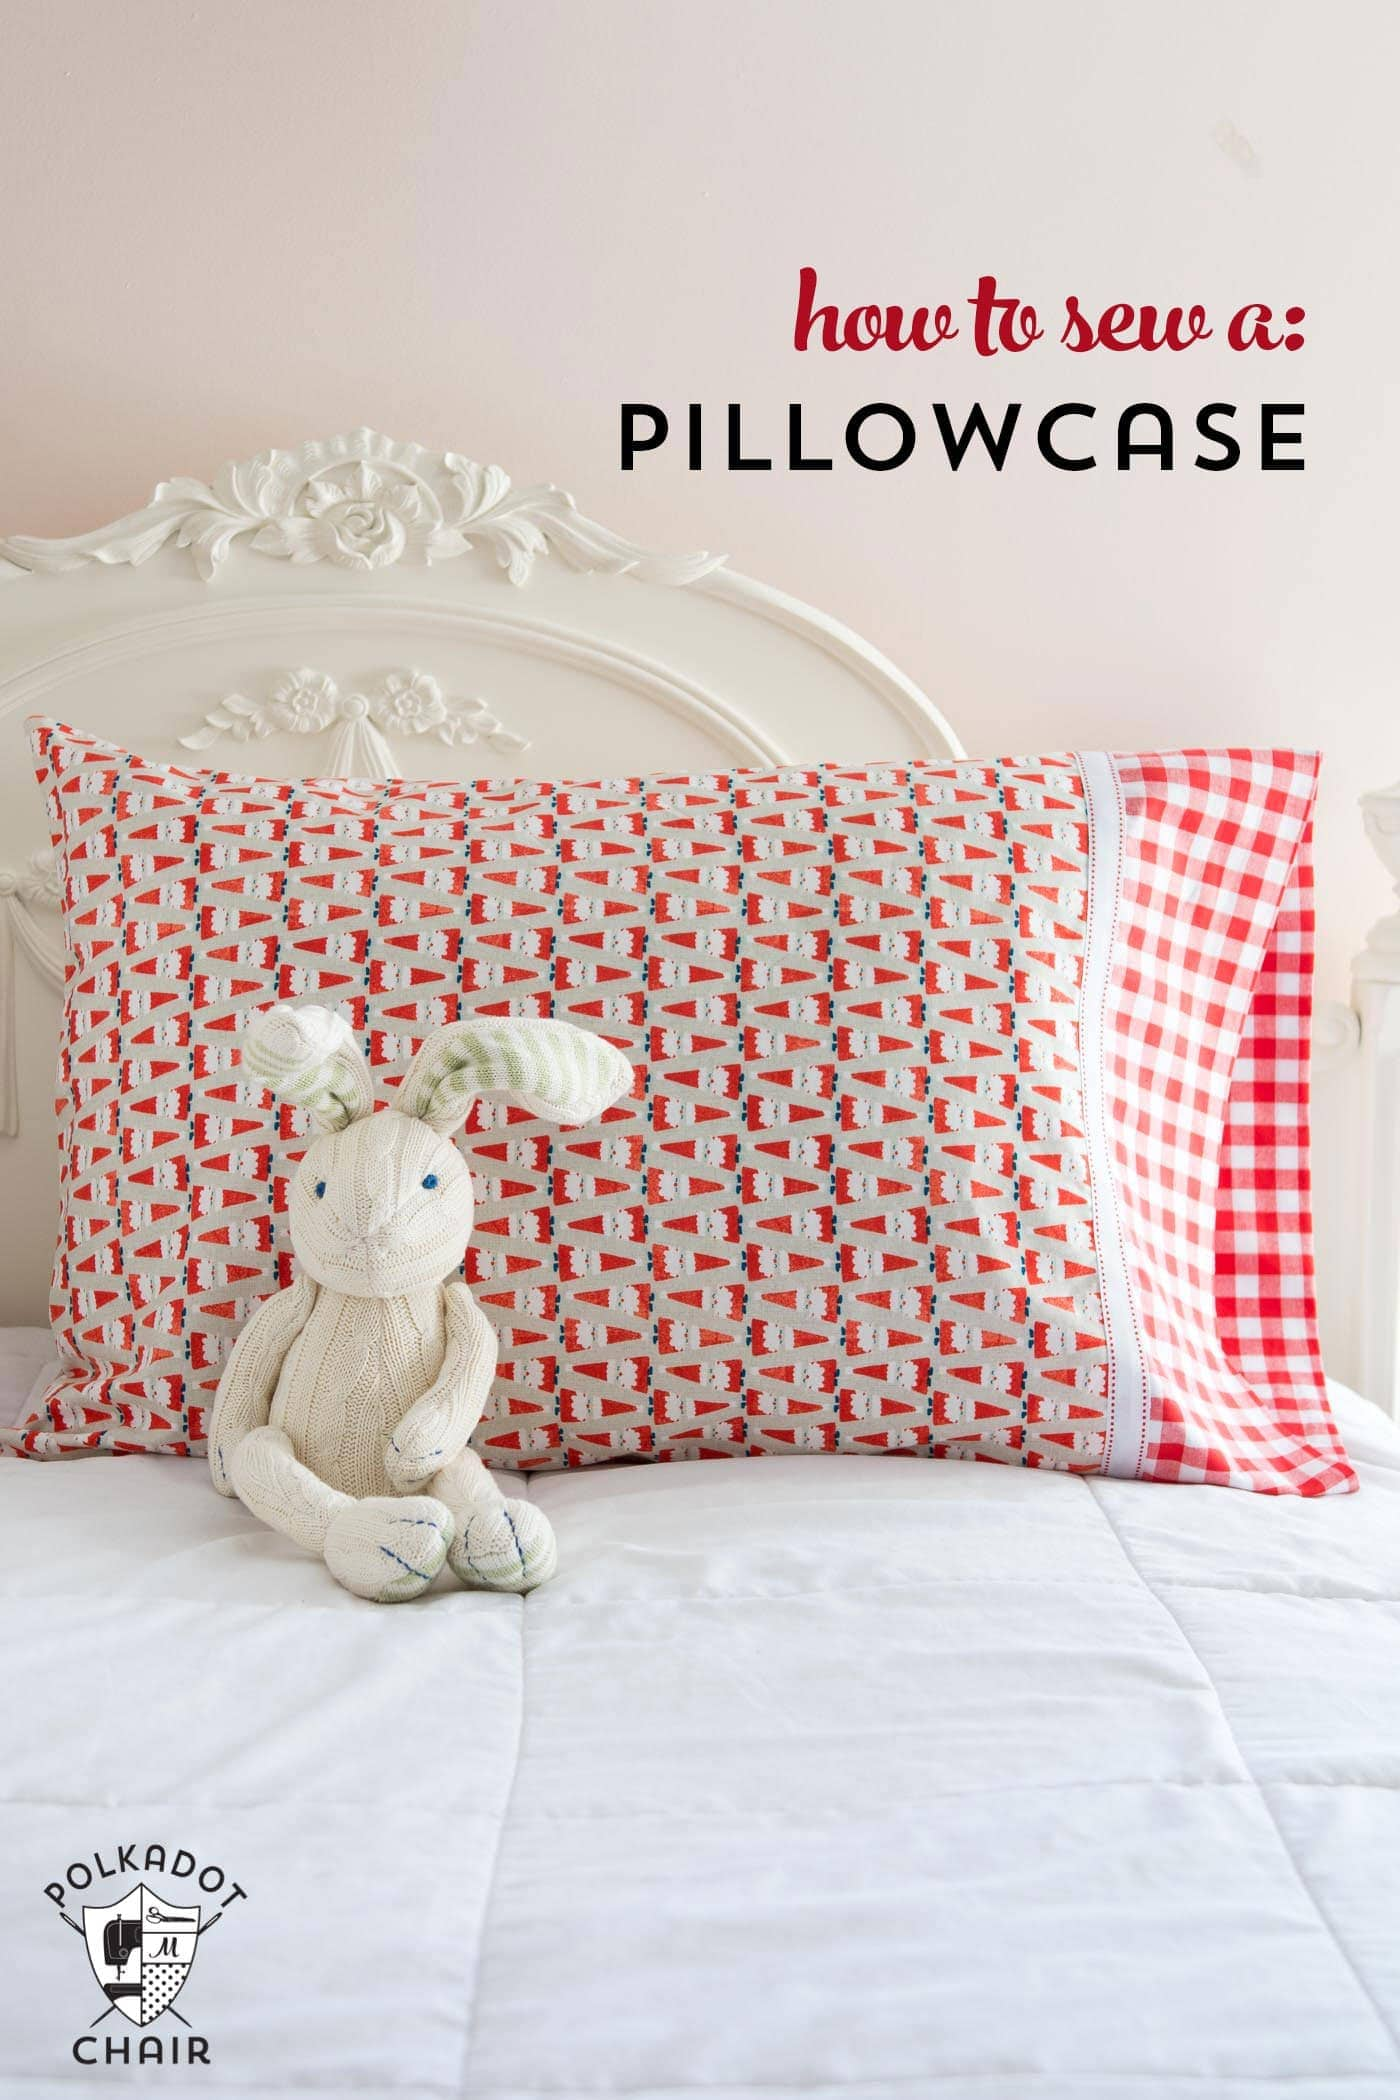 A Quick and Easy Way to Make a Pillowcase  the Polka Dot